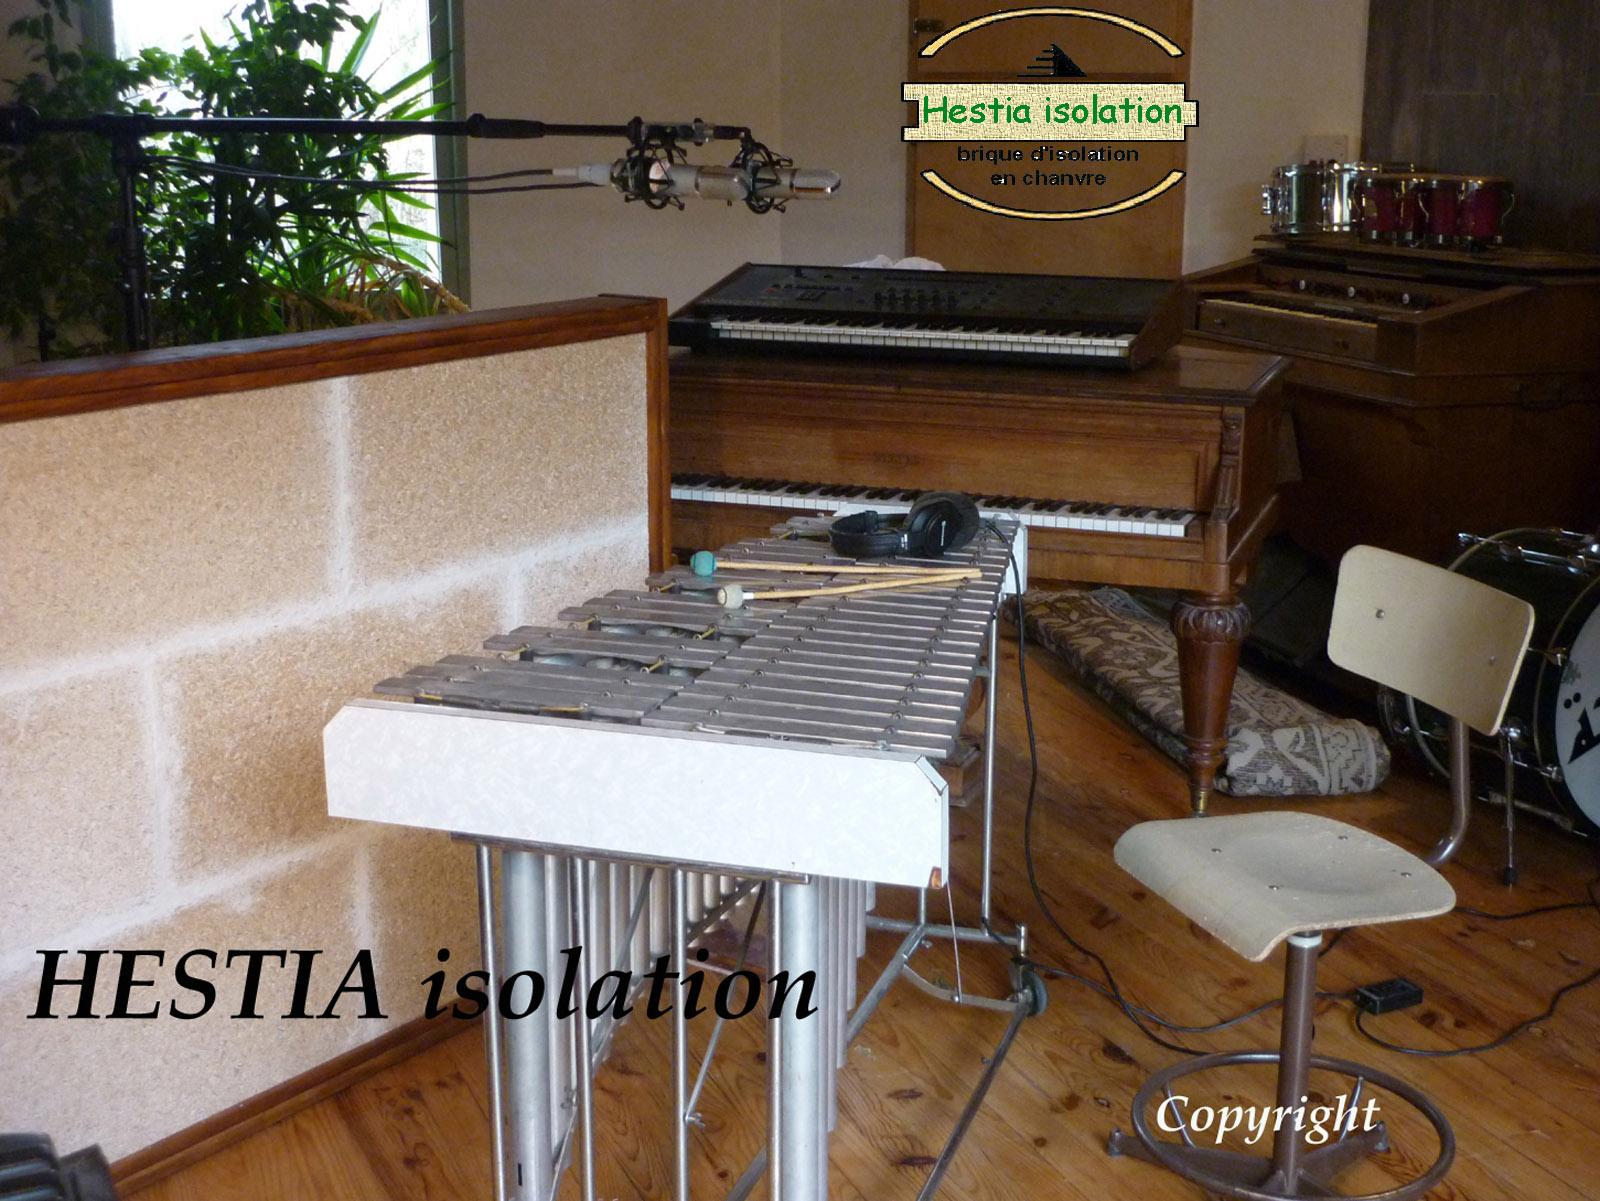 hestia Hestia insulation hemp brick insulation acoustic & thermal quality for studio recording room music concert repetition absorption sound